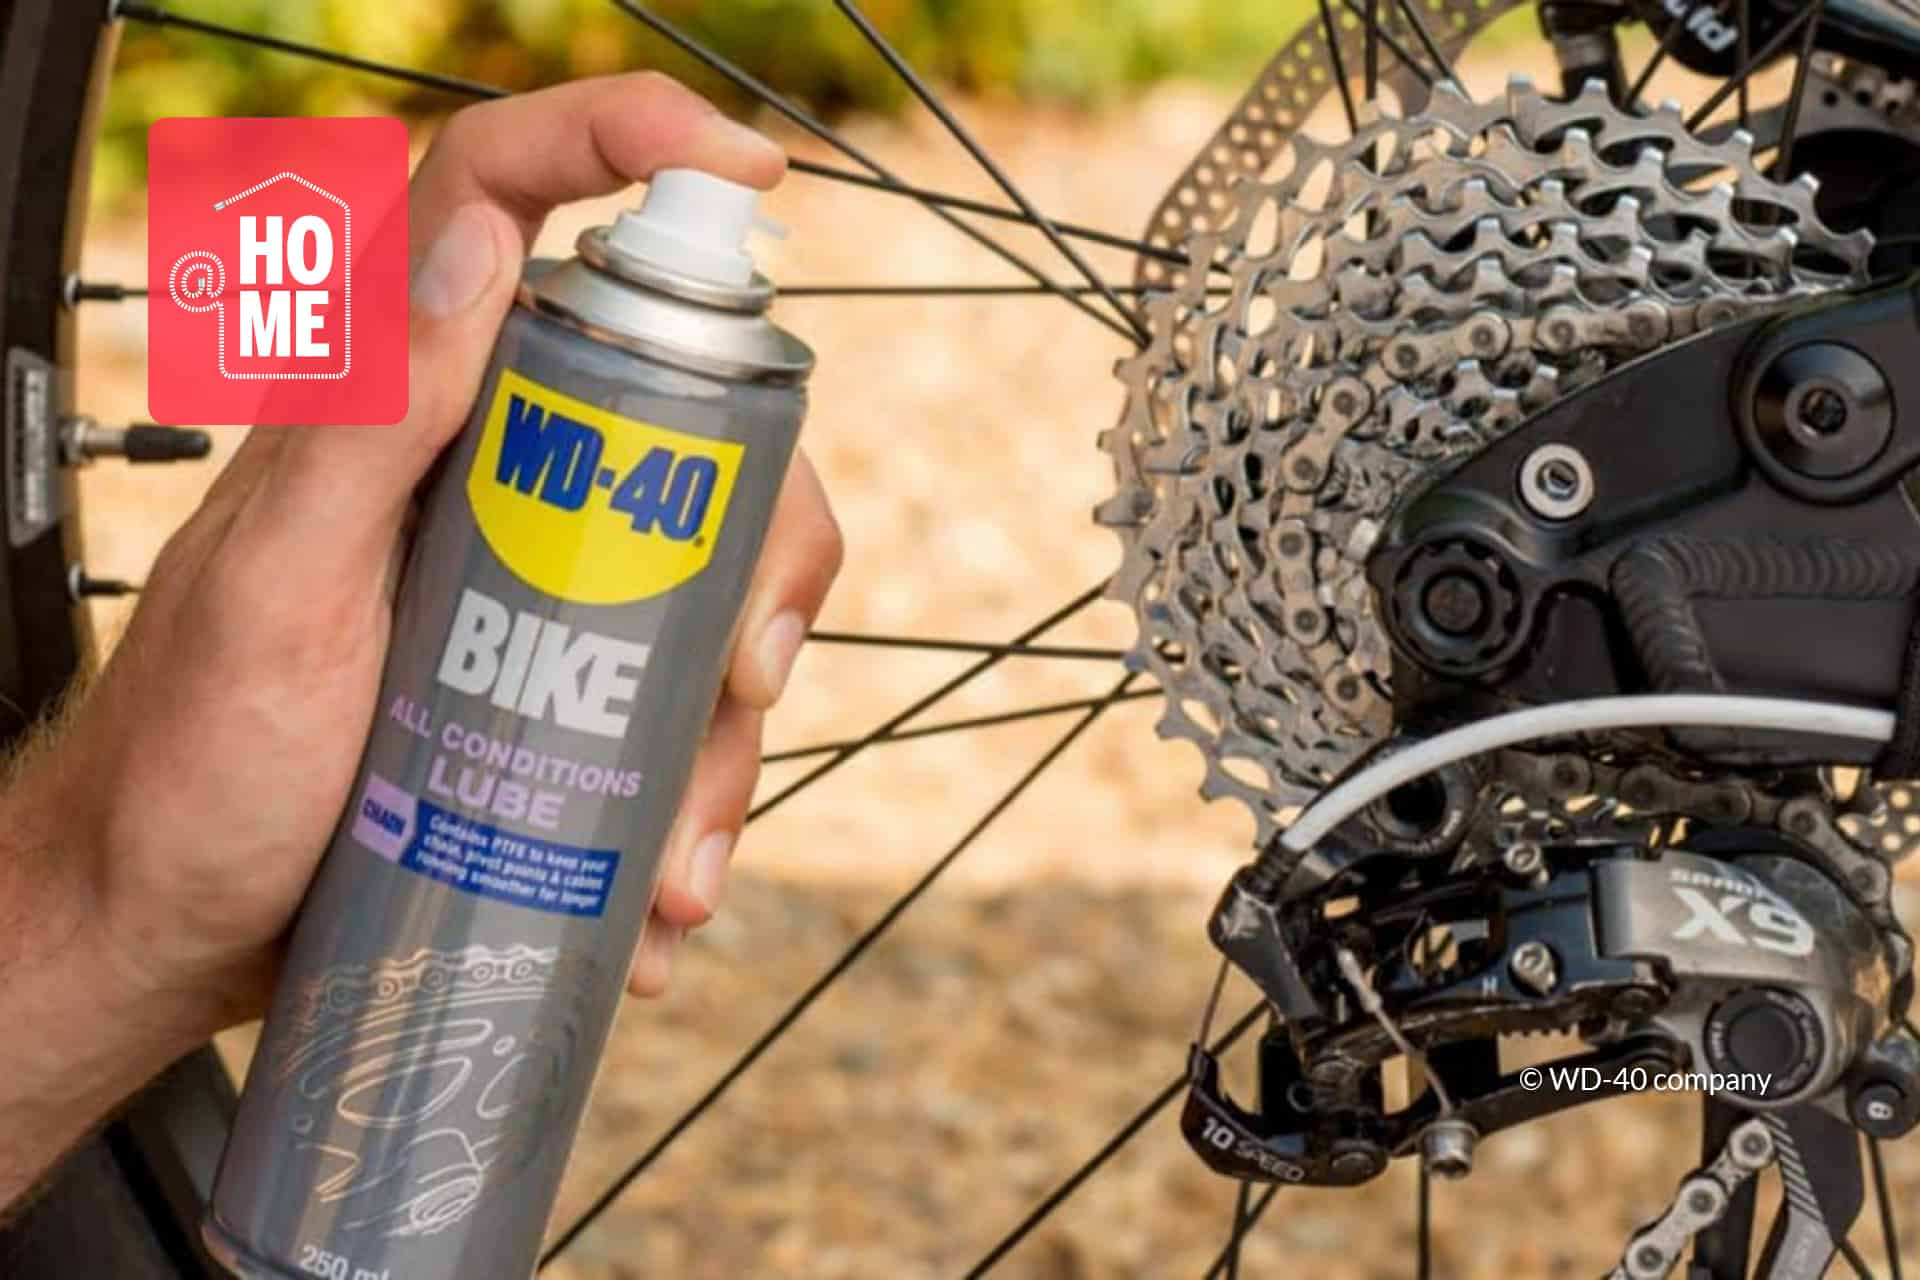 WD-40 All Conditions Lube fietsketting